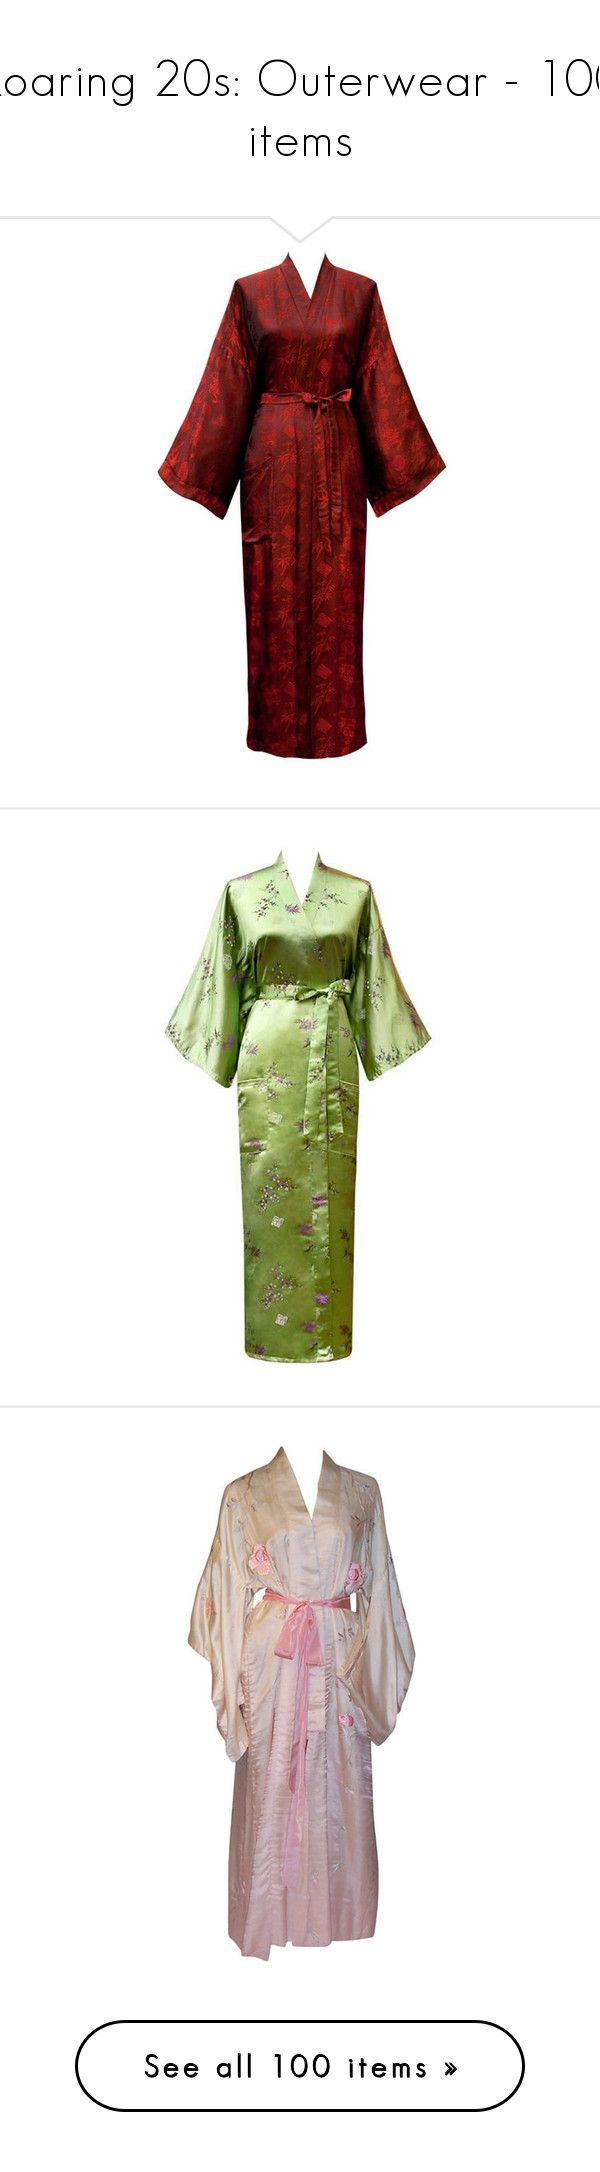 """""""Roaring 20s: Outerwear - 100 items"""" by breadwineroses ❤ liked on Polyvore featuring dresses, kimono, gowns, robe, gown, asian, intimates, robes, lingerie and undergarments"""